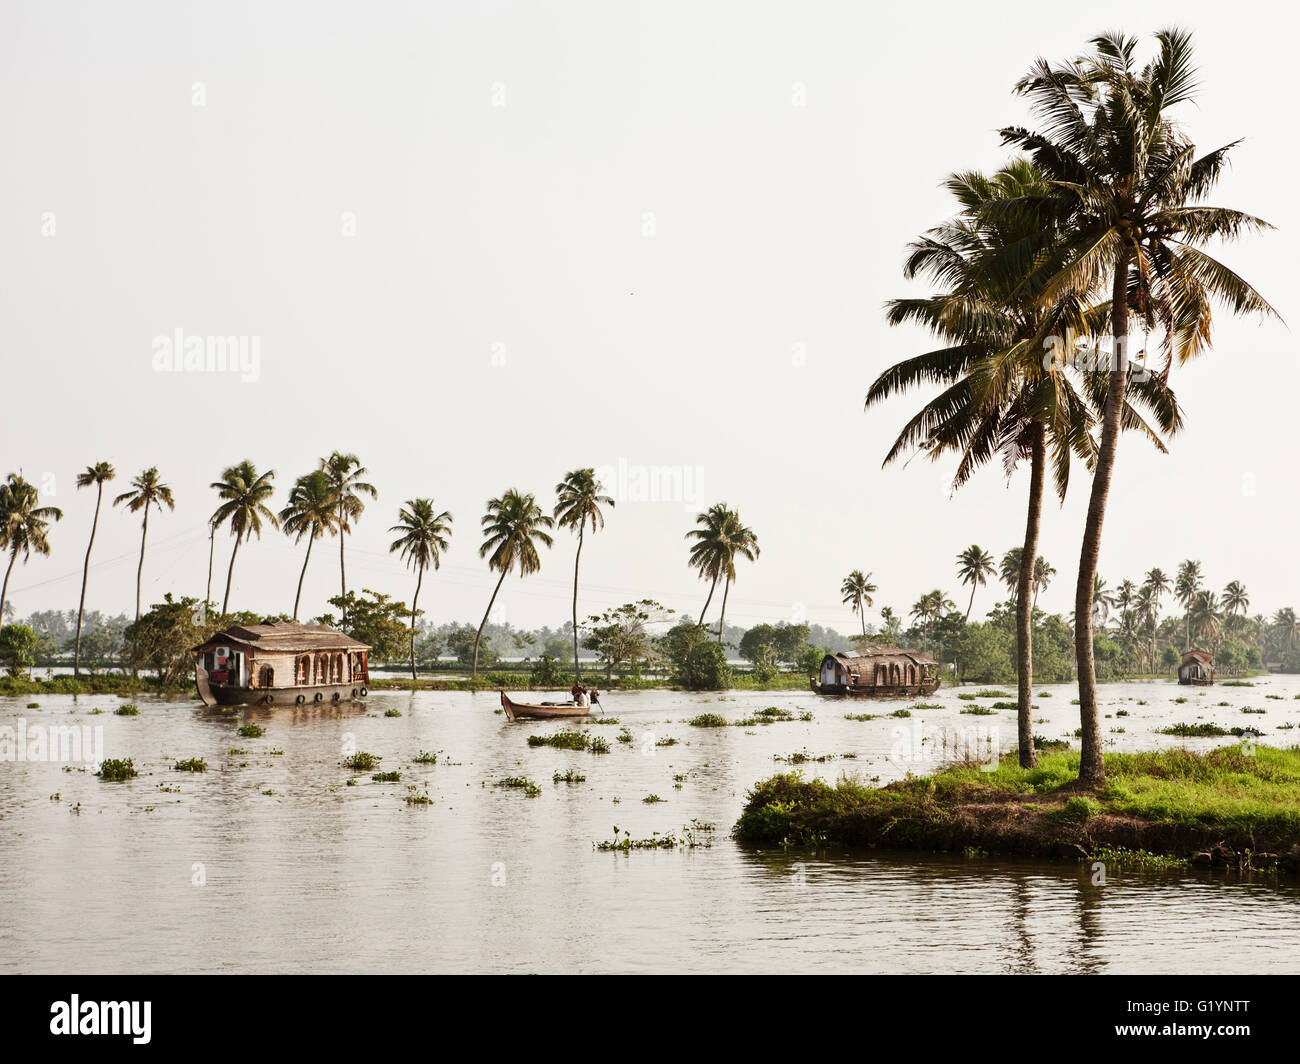 Houseboats along a channel in the Kerala backwaters.India - Stock Image